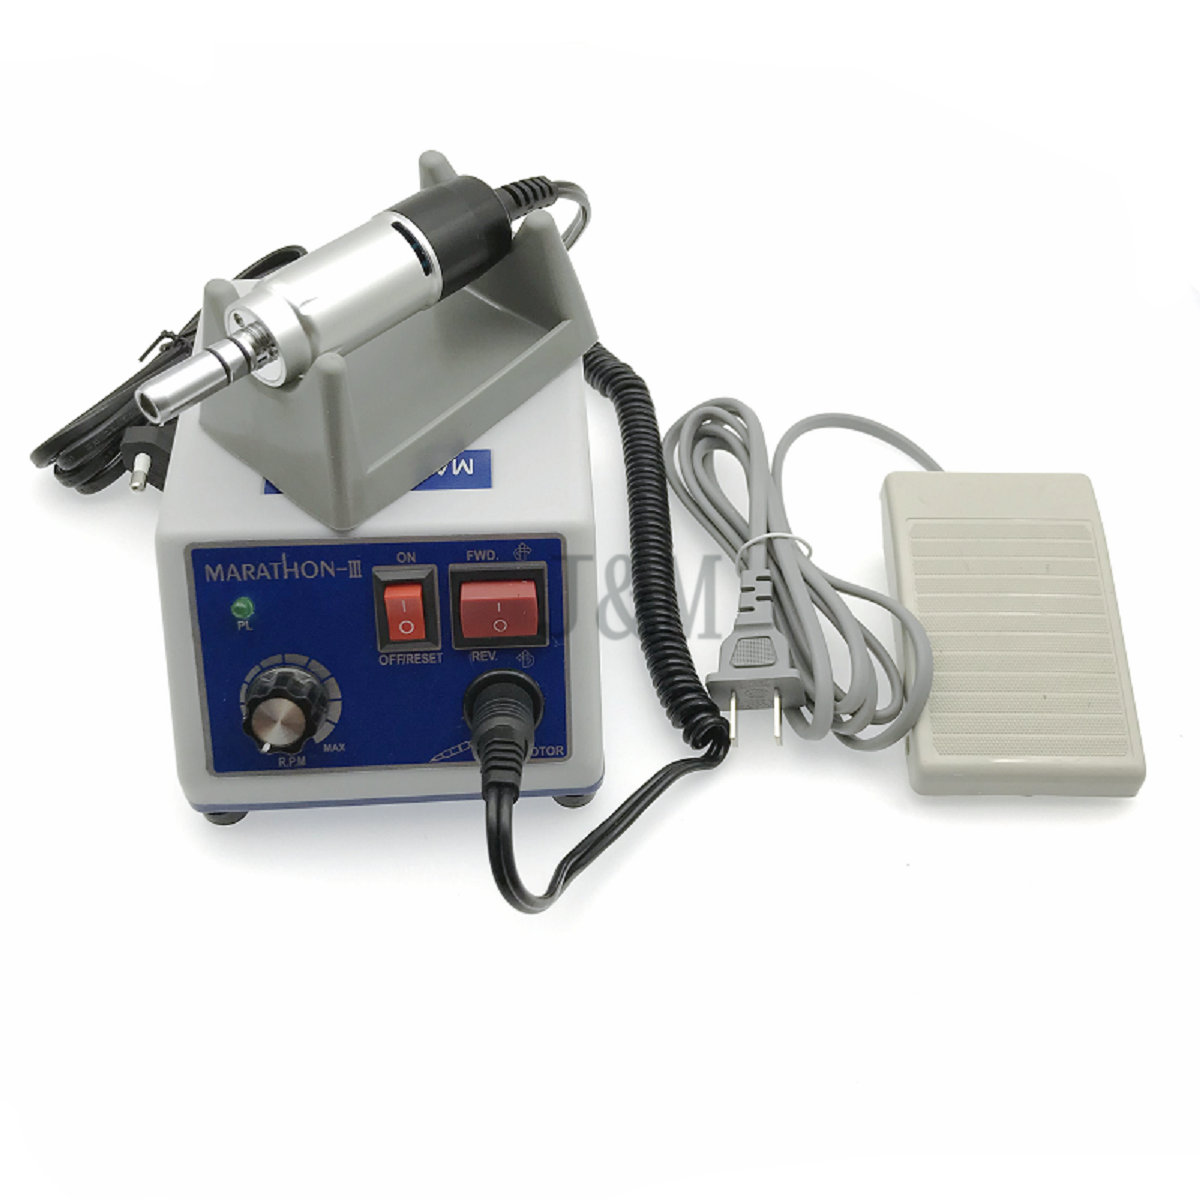 Shiyang Marathon Type N7S S04 Micro Motor with Straight Nose Handpiece/&Contra Angle